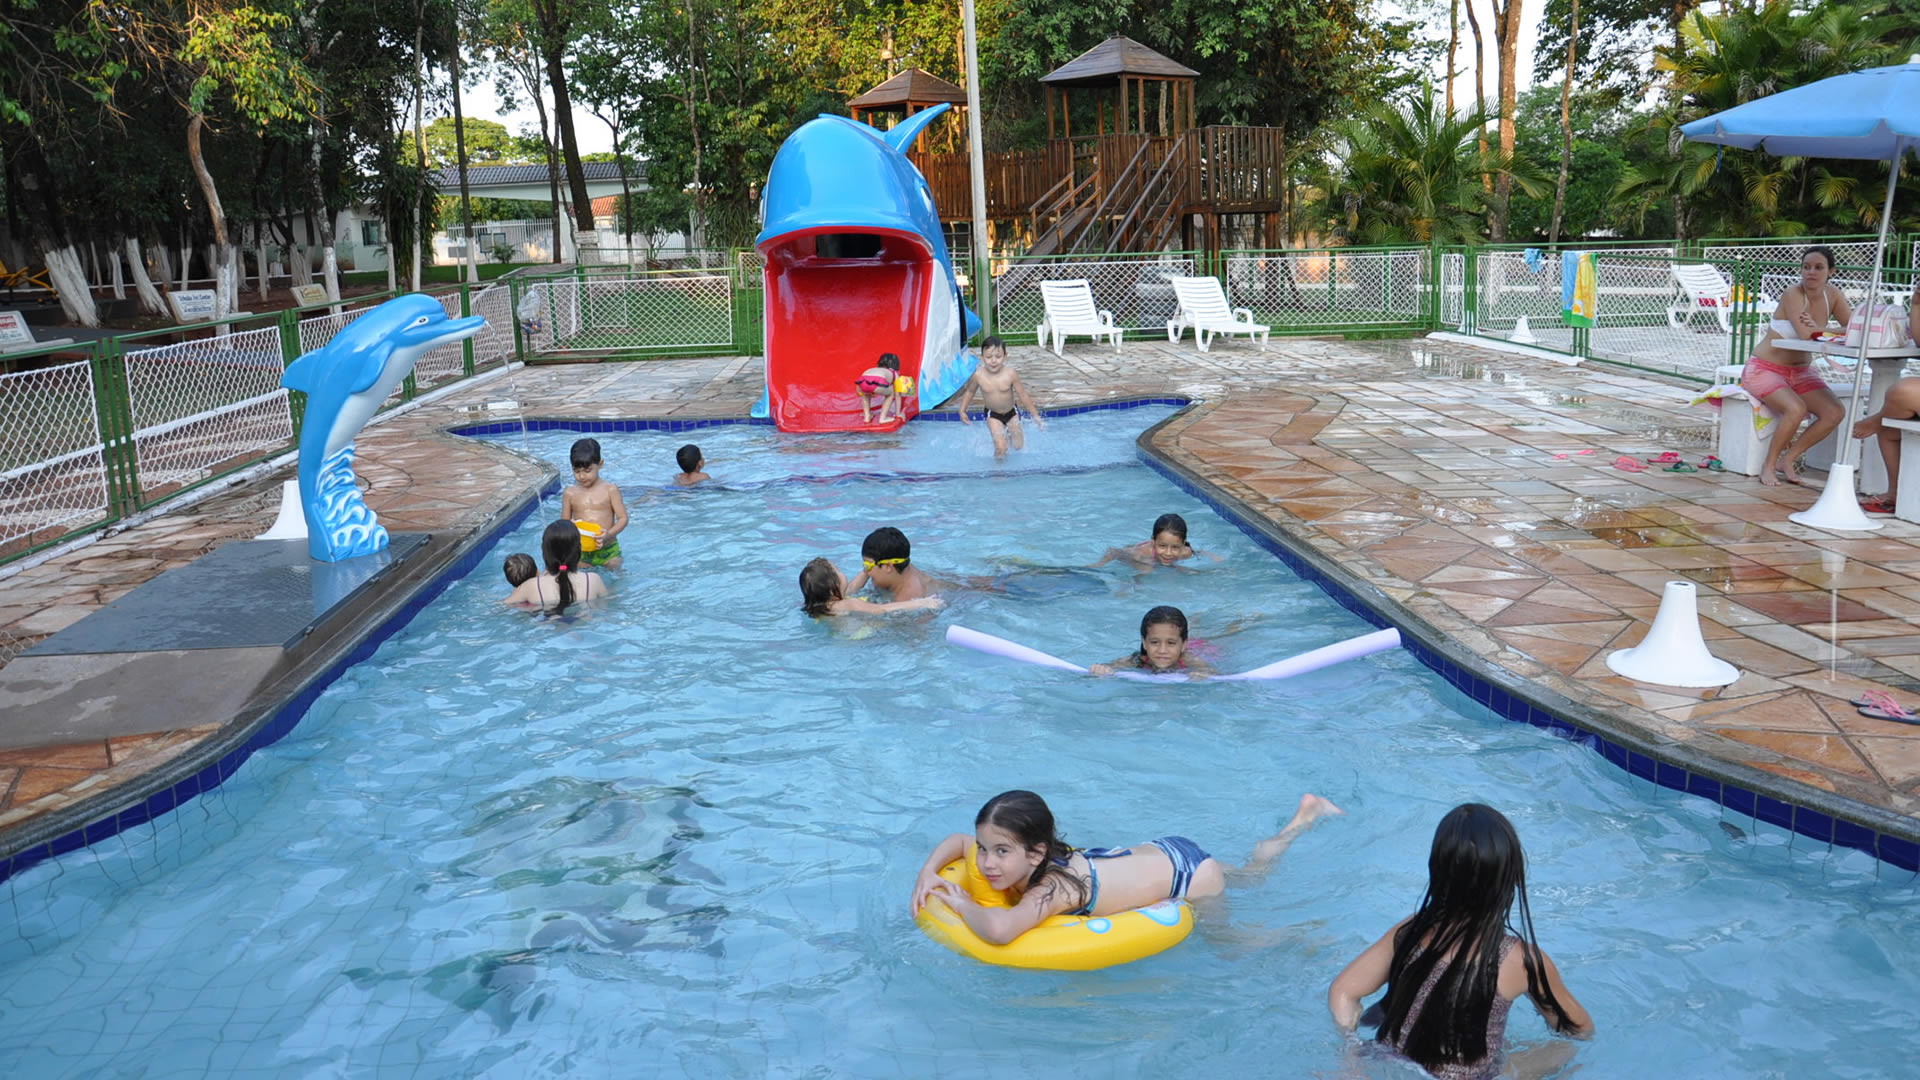 Piscina infantil caiua country clube for Piscina infantil